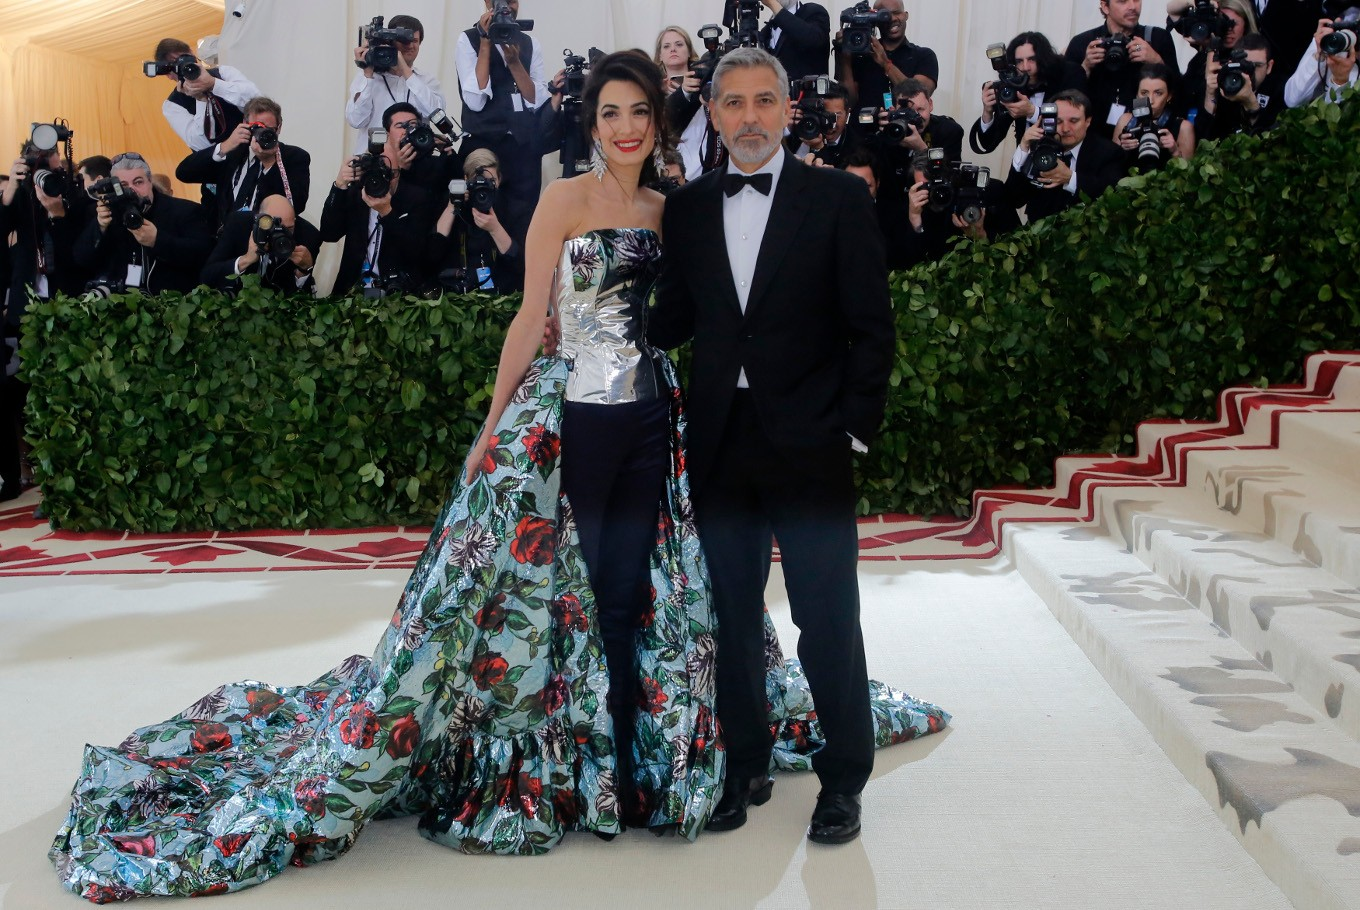 George and Amal Clooney arrive at the Metropolitan Museum of Art Costume Institute Gala (Met Gala) to celebrate the opening of 'Heavenly Bodies: Fashion and the Catholic Imagination' in the Manhattan borough of New York, U.S., May 7, 2018.